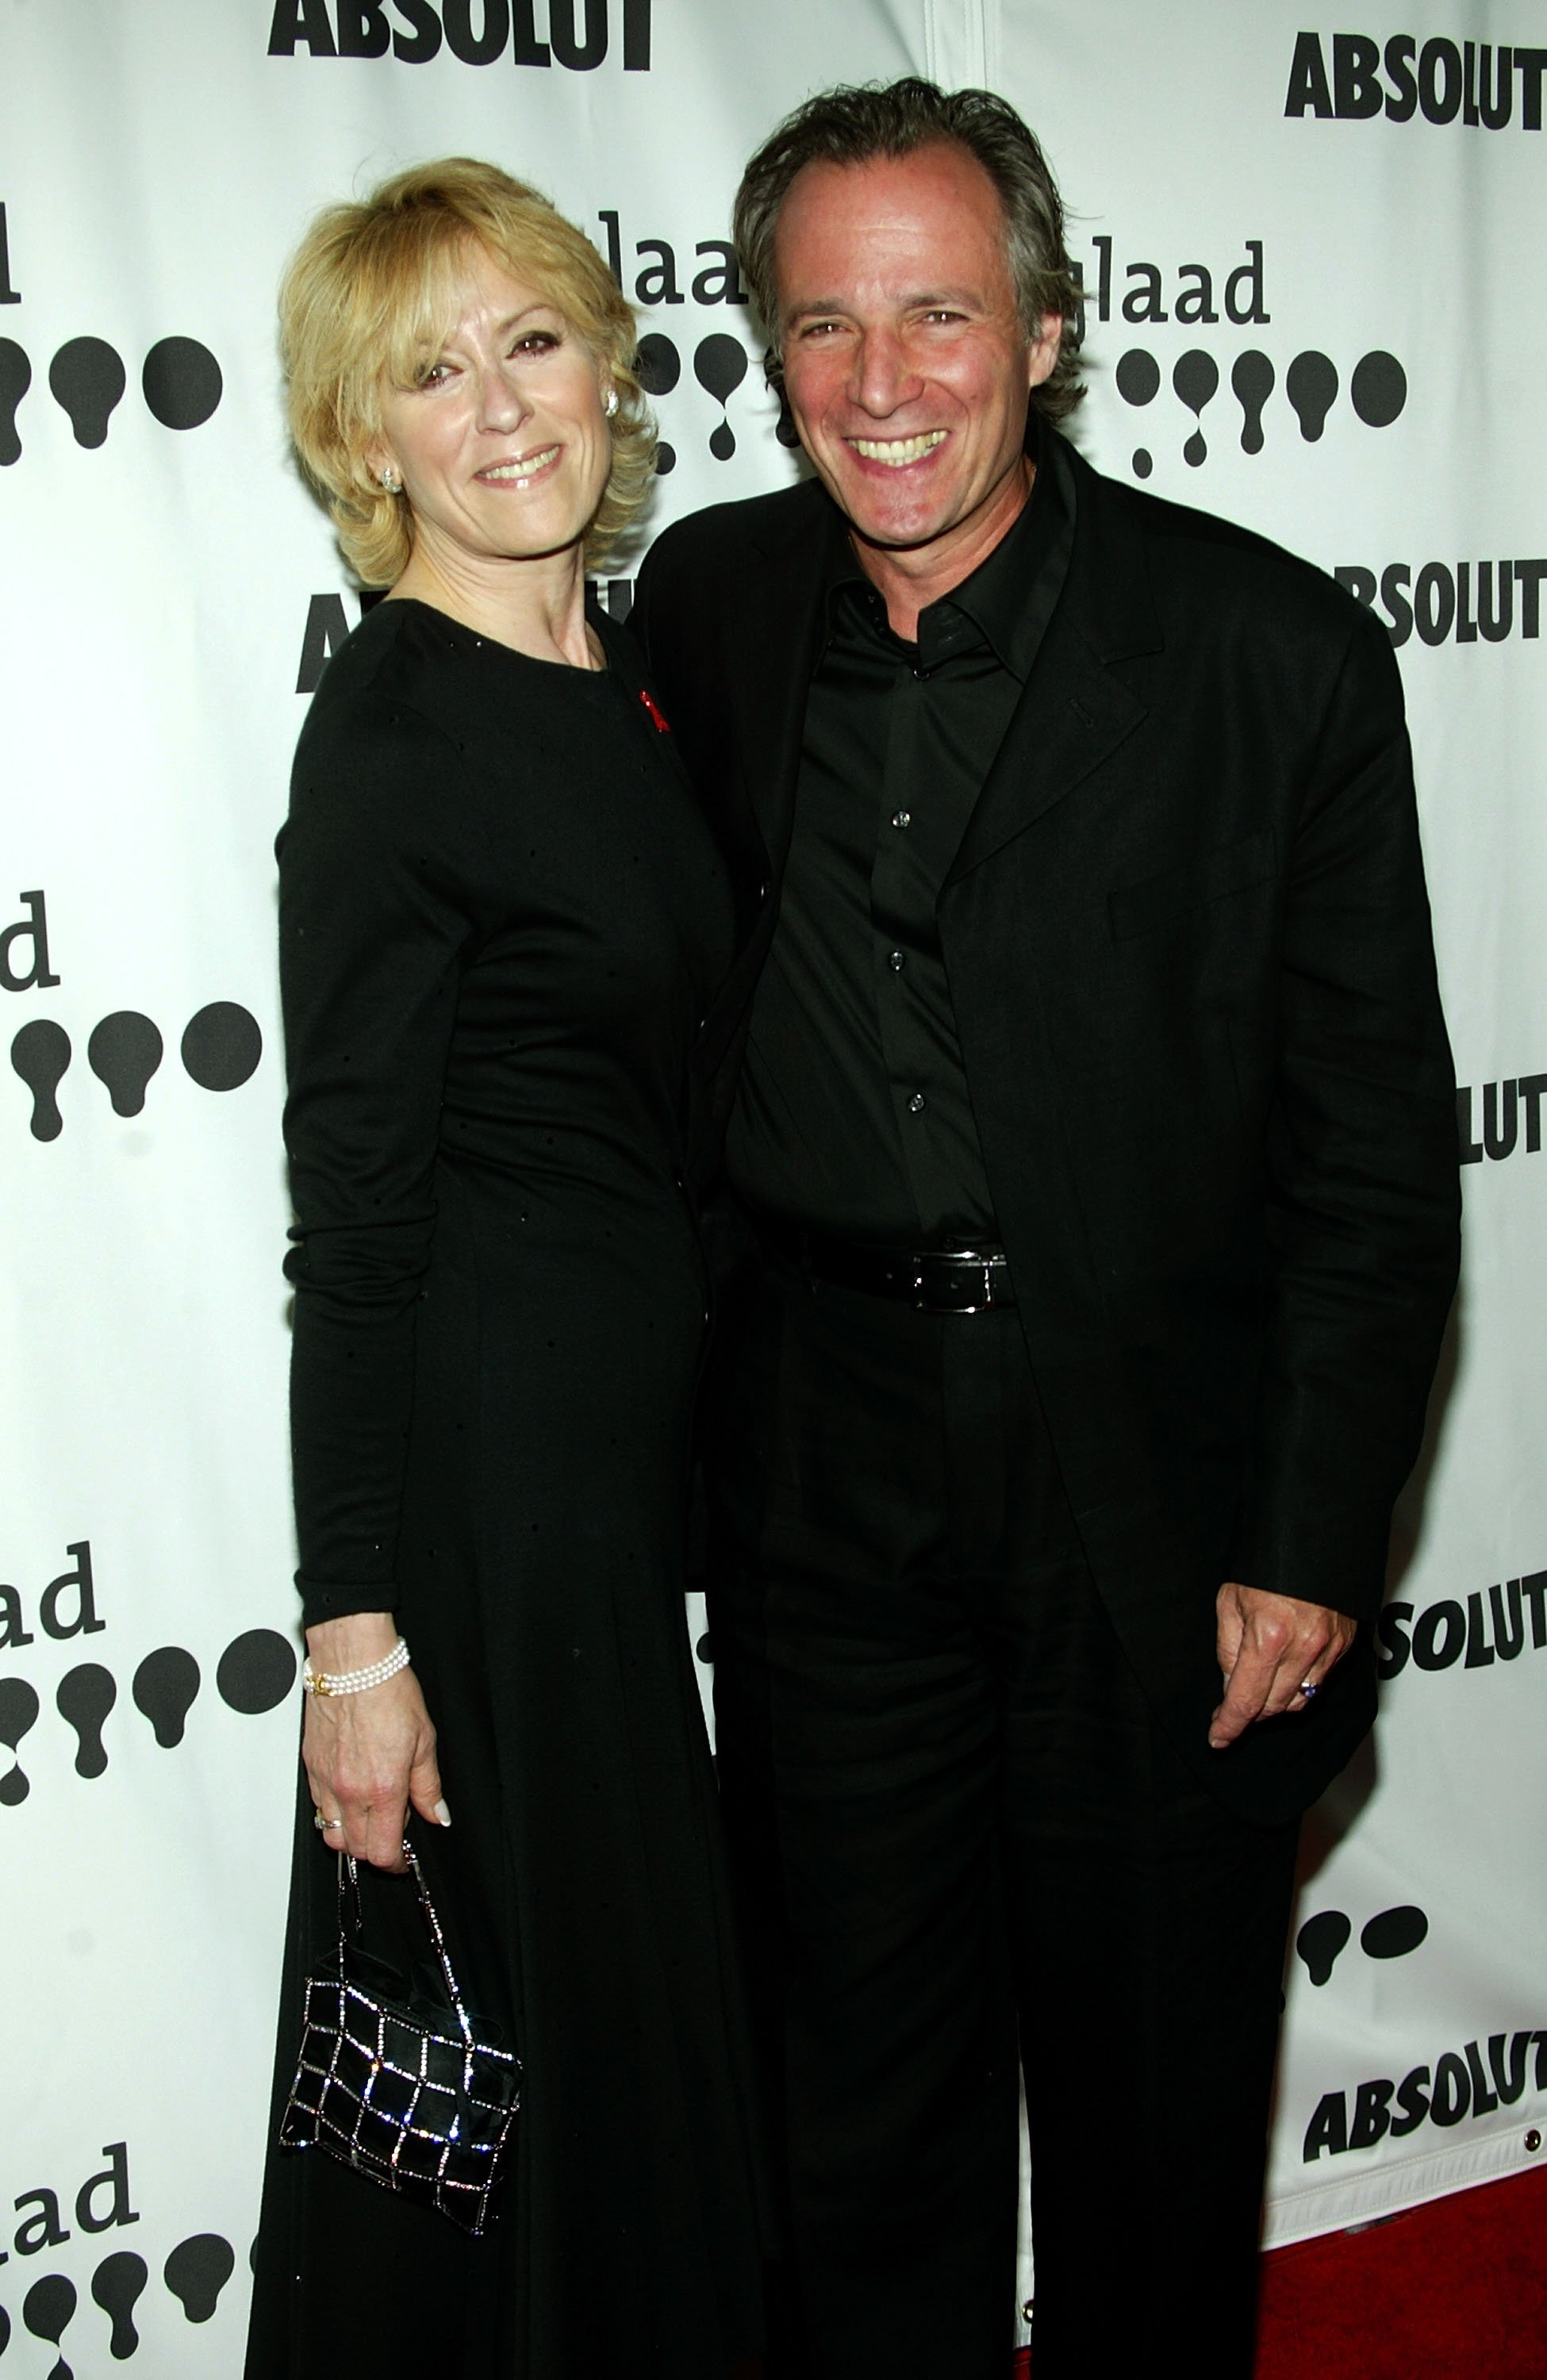 Judith Light and Robert Desiderio arrive at the 16th Annual GLAAD Media Awards at the Kodak Theater on April 30, 2005, in Hollywood, California.   Source: Getty Images.